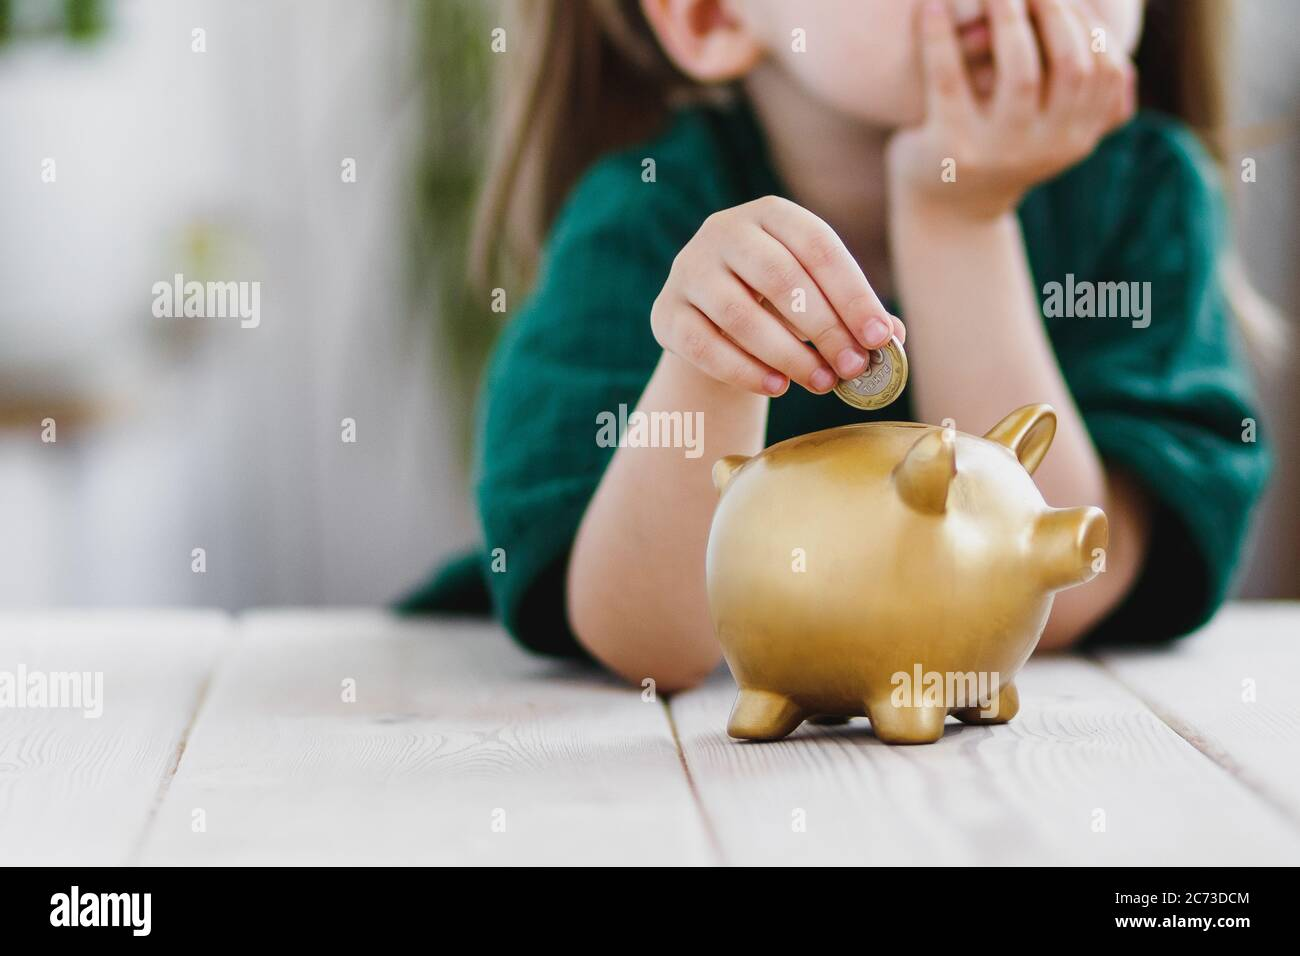 Little girl in green dress thinking about her money spending and putting a coin into a piggy bank. Money saving concept Stock Photo